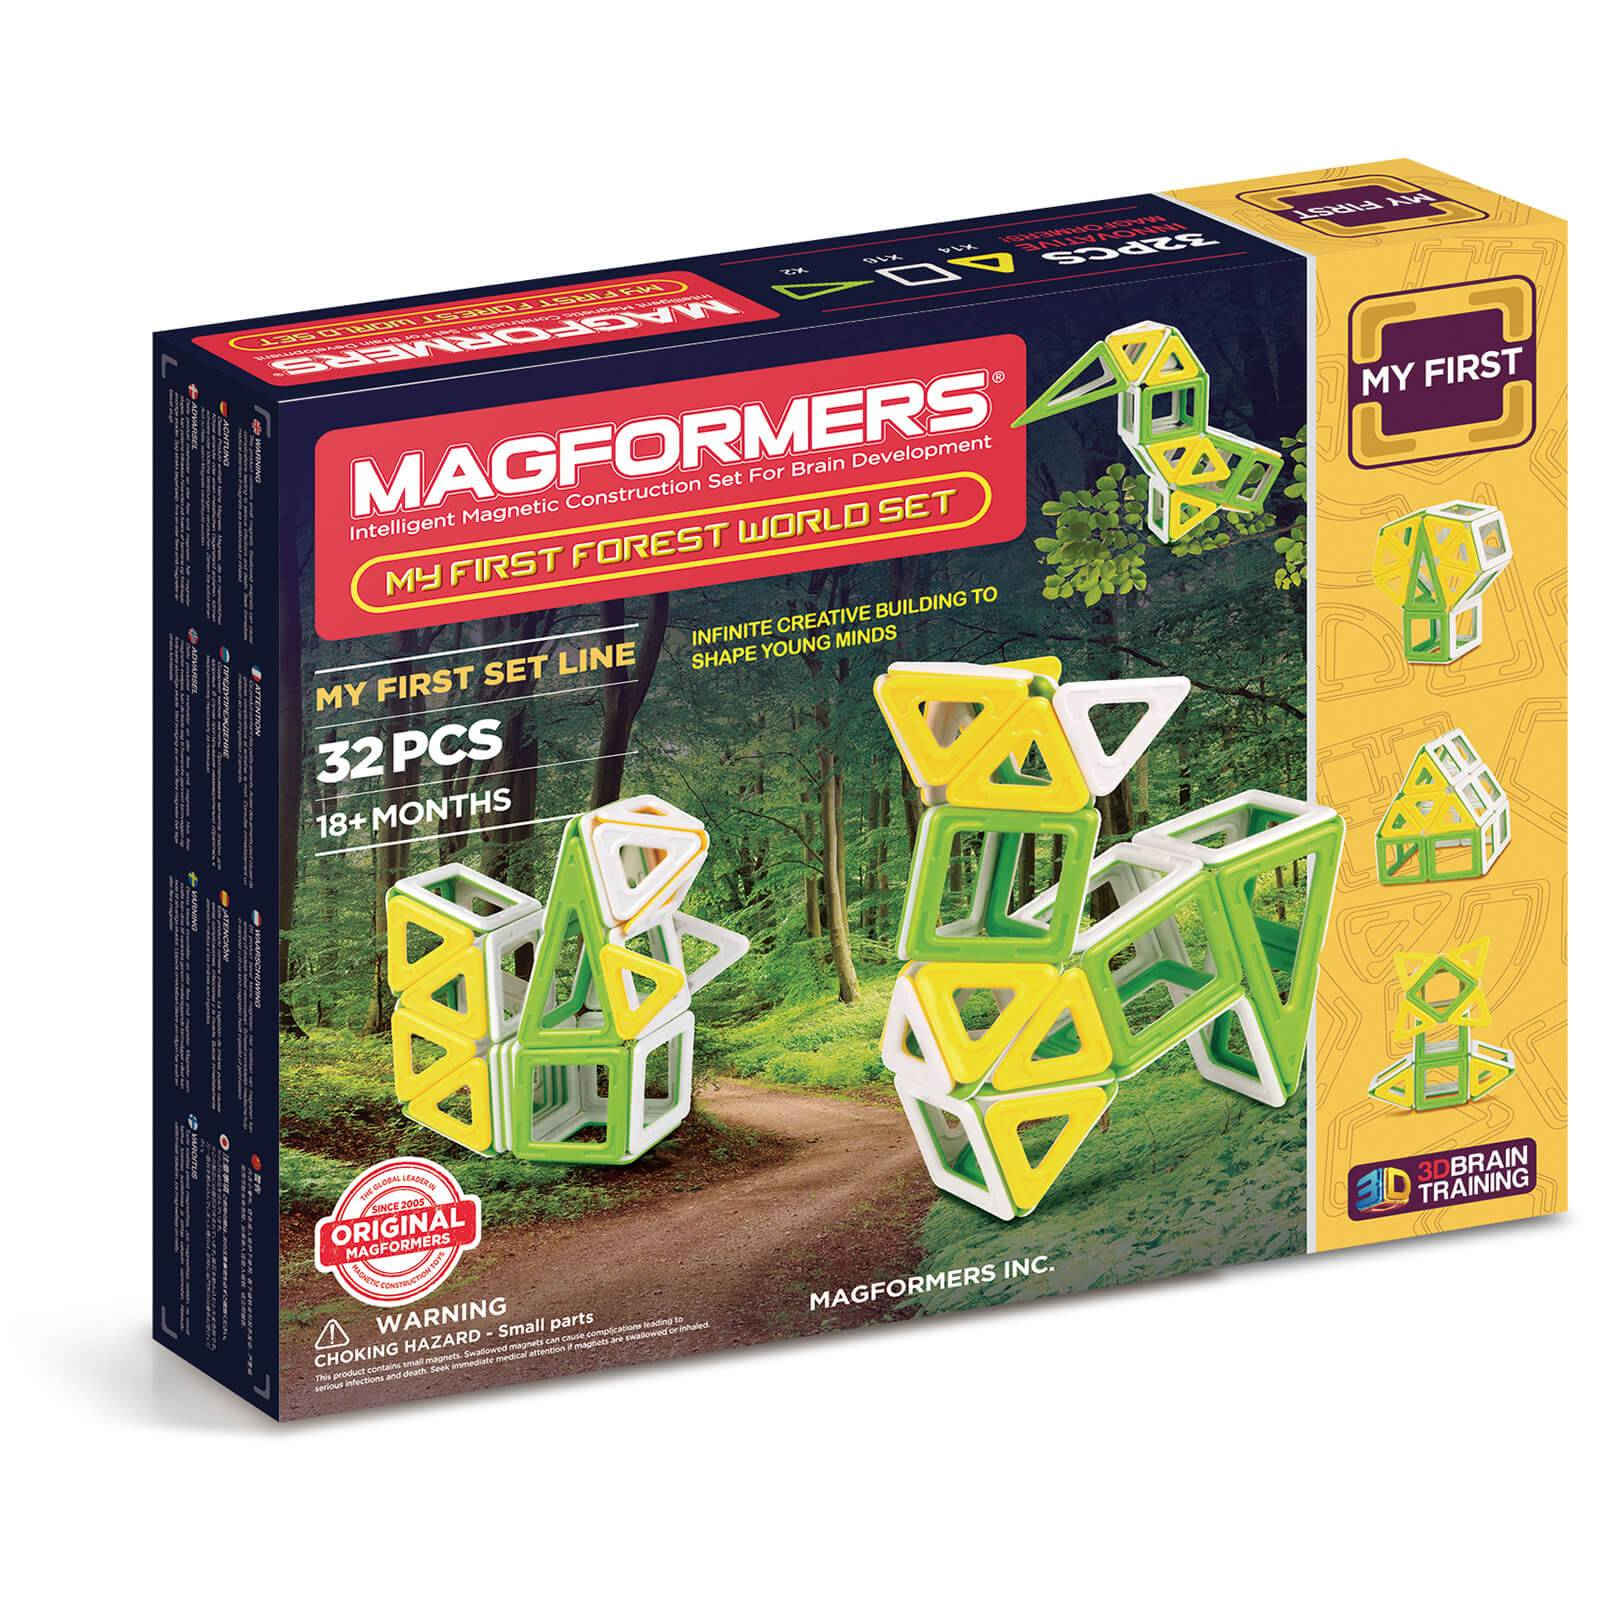 Magformers Magformer My First Forest World Set - 32 Pieces